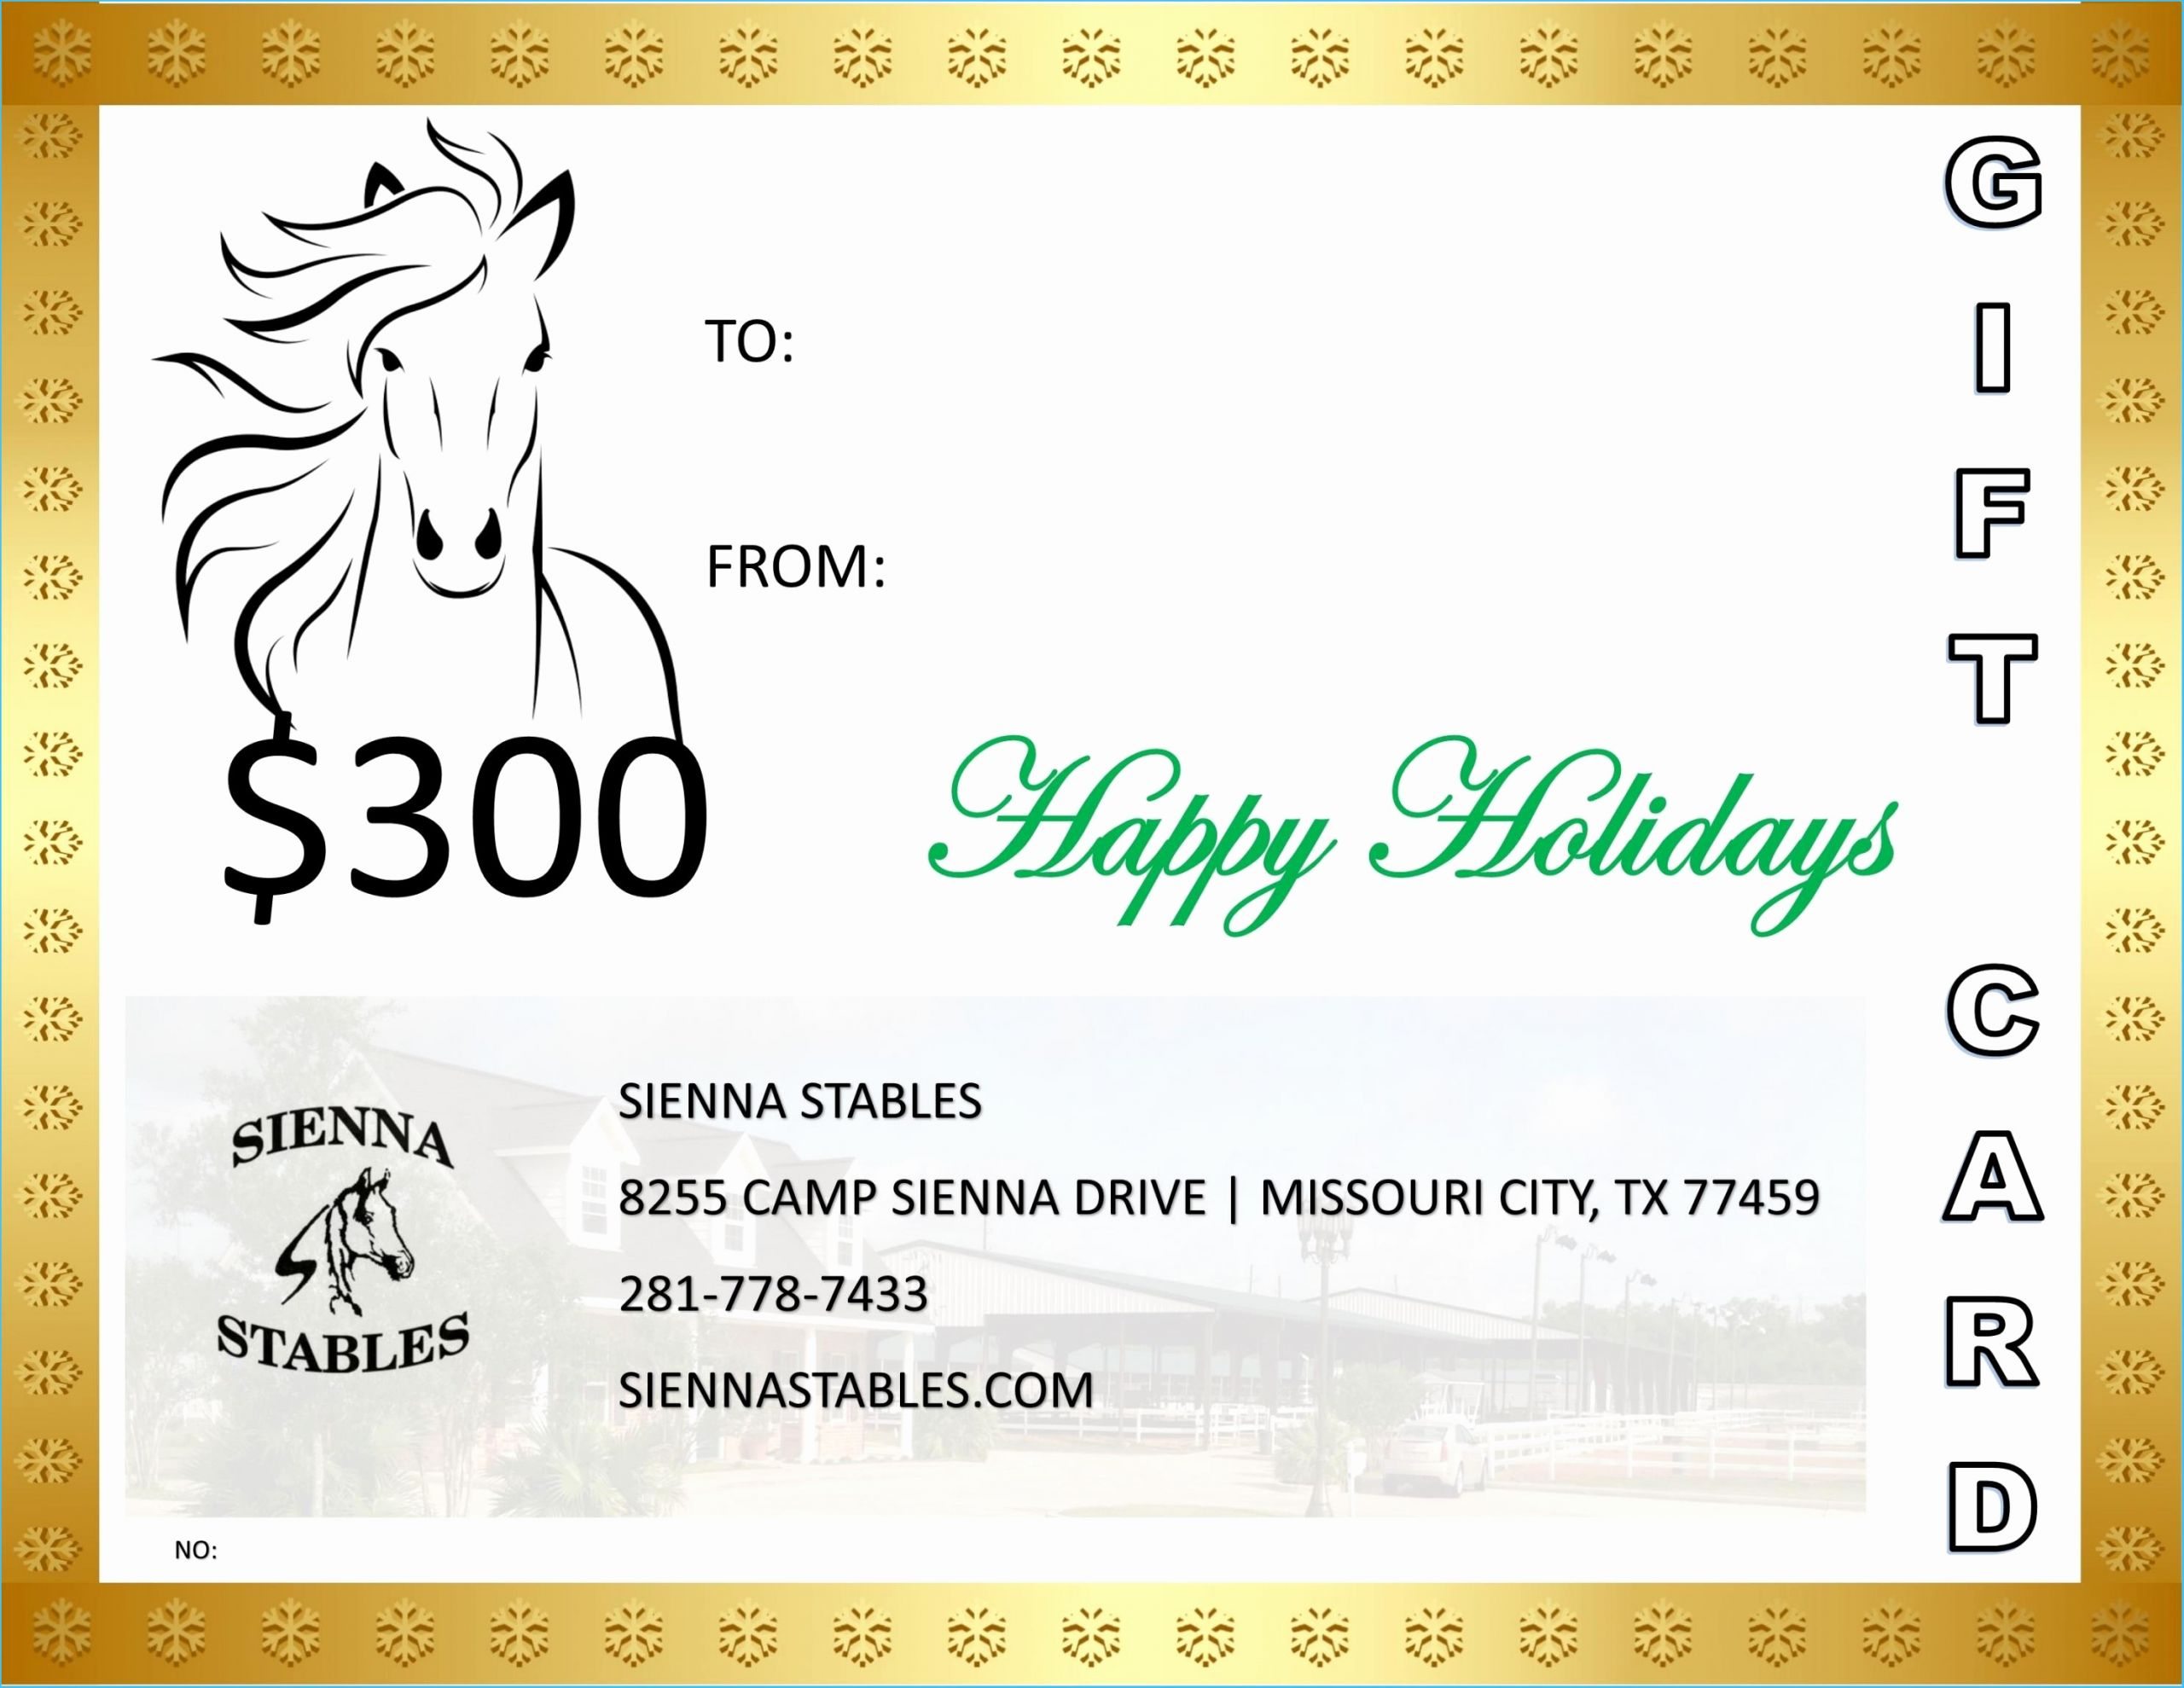 Horseback Riding Gift Certificate Template Awesome Horseback Riding Gift Certificate Template 9538